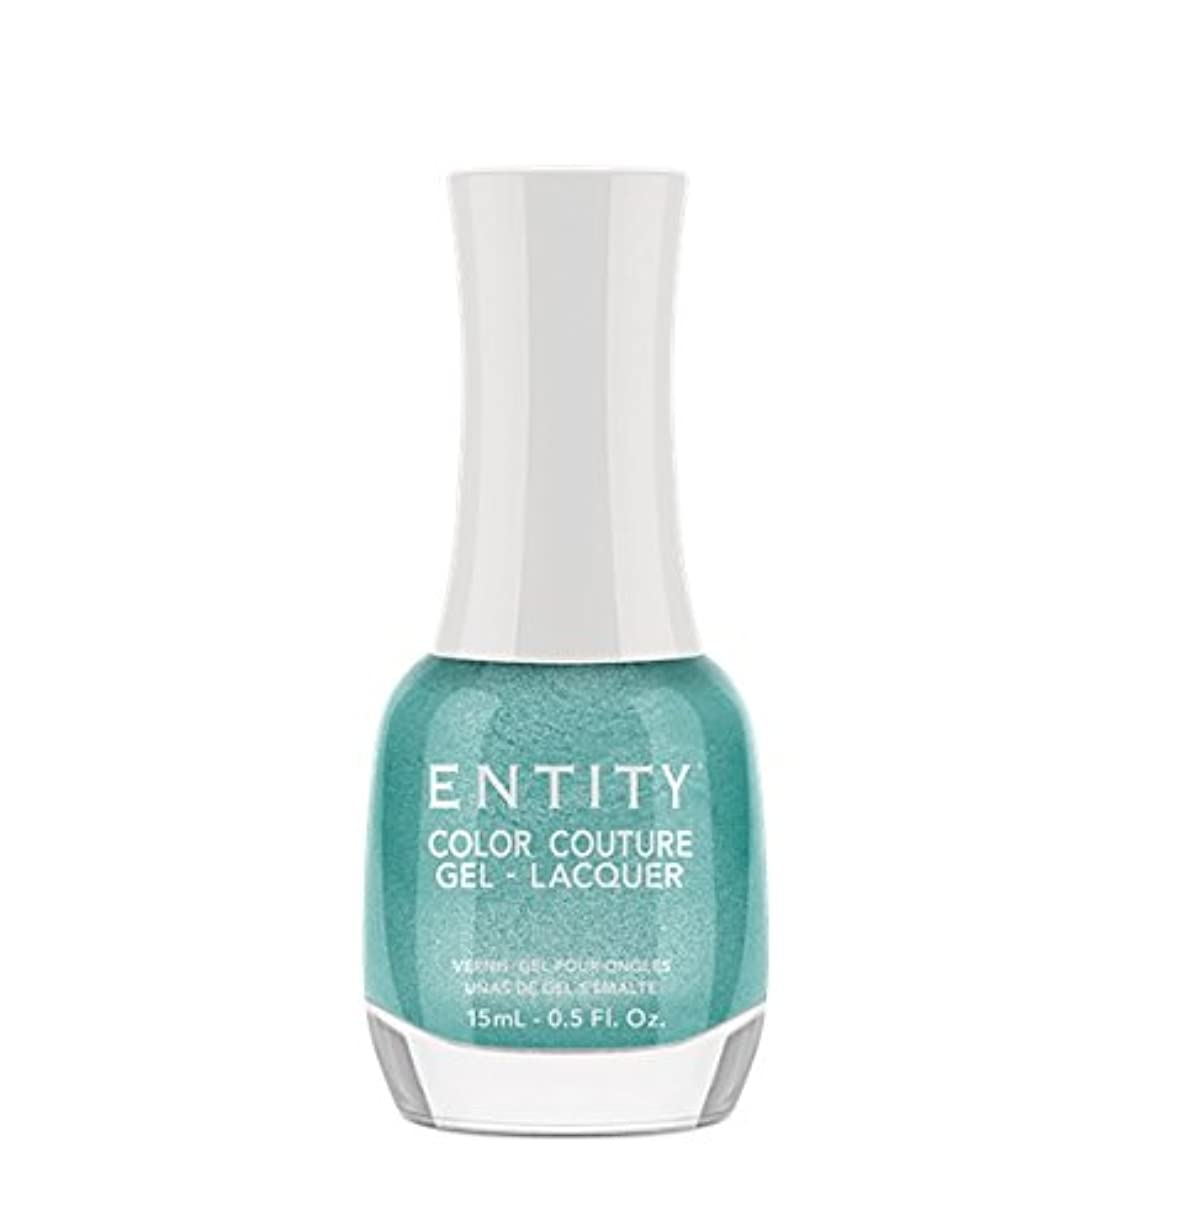 フェリー物足りないツーリストEntity Color Couture Gel-Lacquer - Jewel Tones - 15 ml/0.5 oz